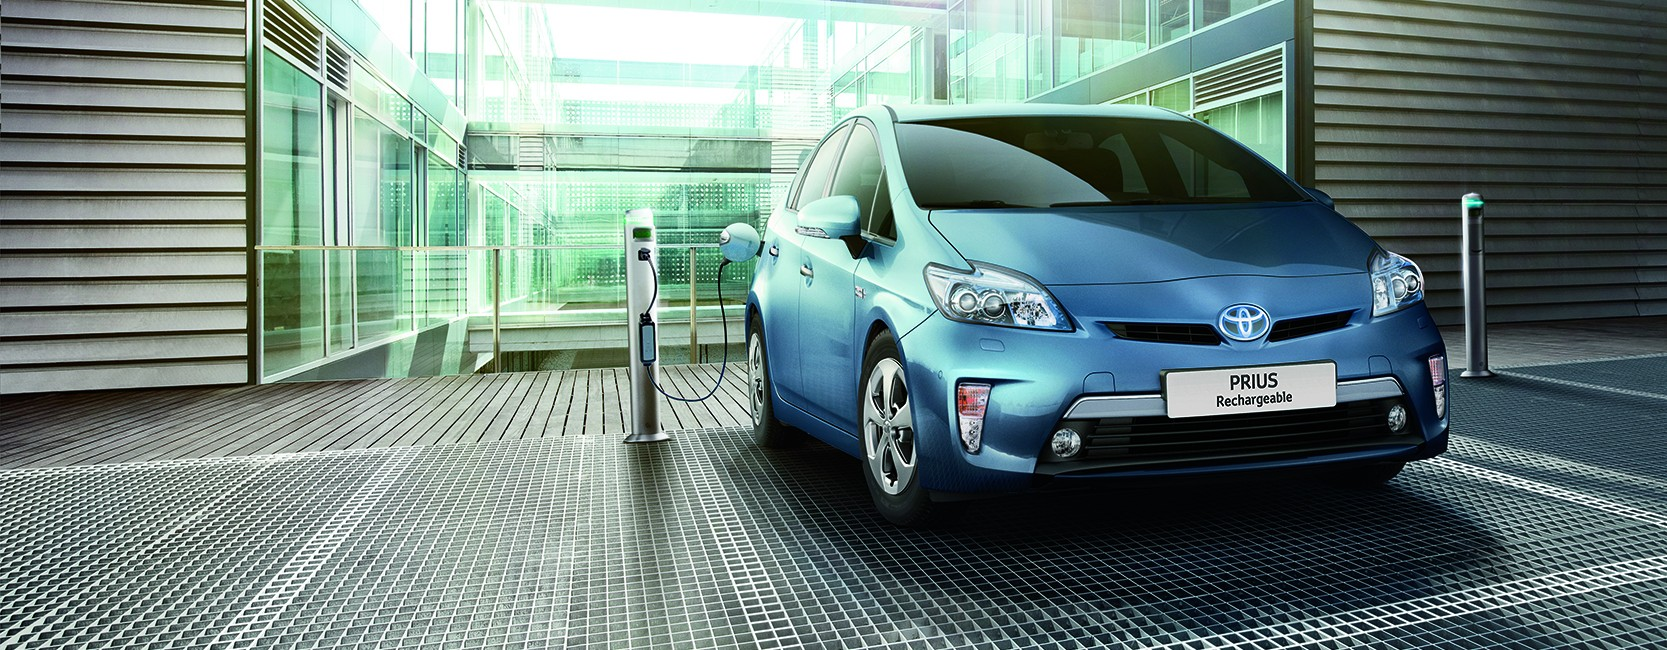 Prius Rechargeable